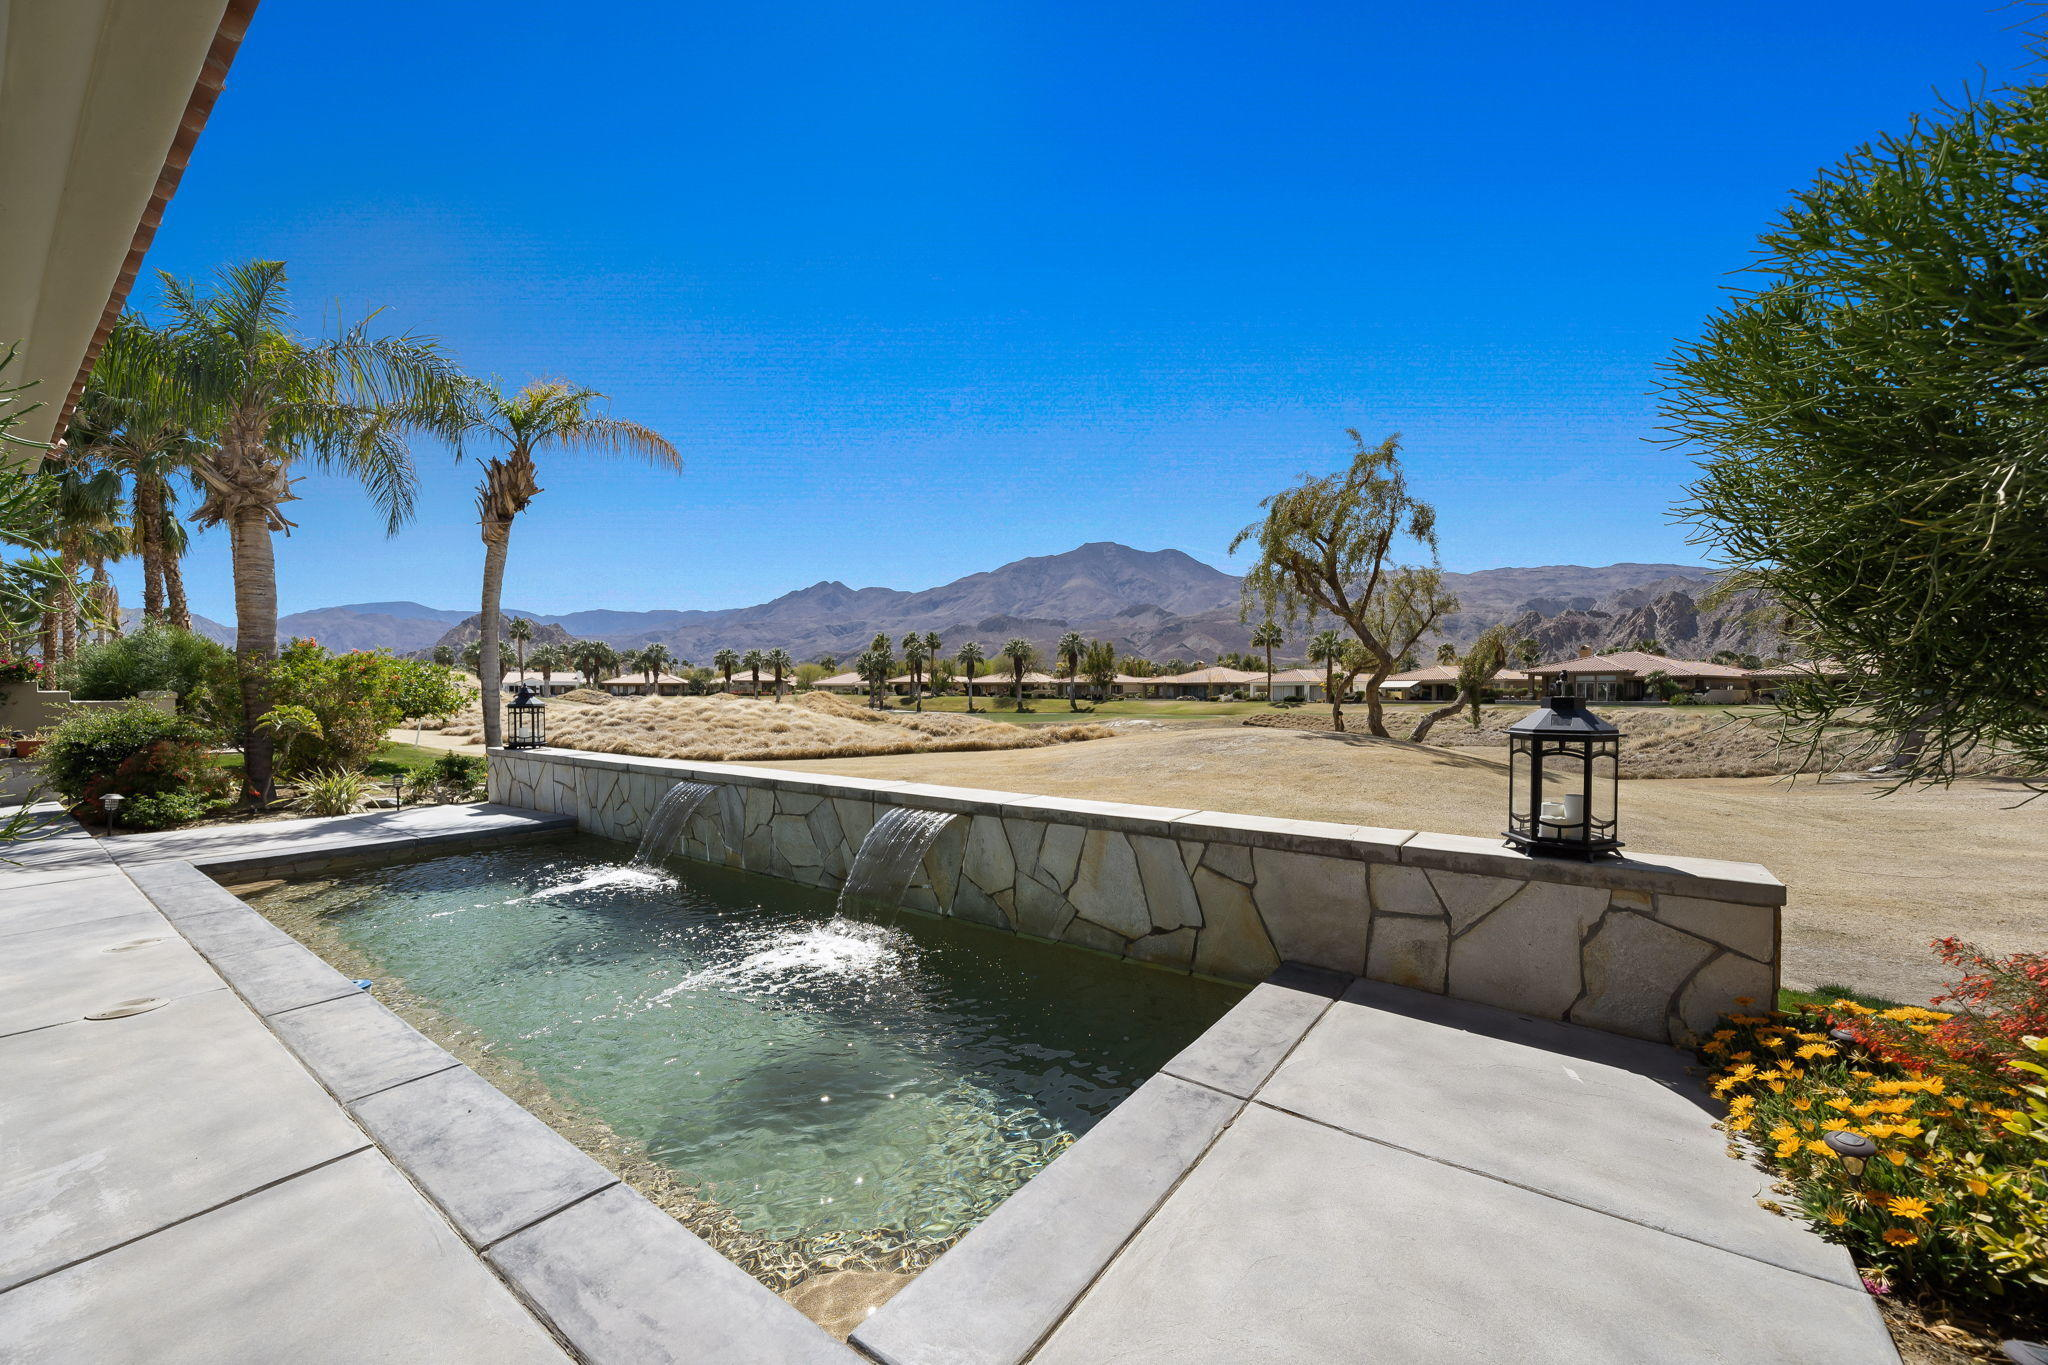 Located behind the private gates at PGA West sits this popular Heritage Three plan with detached Casita! Incredible Southwest facing views of the Santa Rosa Mountains & 11th fairway of the Nicklaus Private course! This home is impeccably maintained by these owners!   Since purchased they have added a Pebble Tec Pool, Rock, Fire Pit, Water Heaters, Sub Zero Refrigerator, 2 Boesch Ovens, replaced 2 of the 3 AC units and installed Epoxy floors in the garage!  Private courtyard entry leads into the foyer with tile flooring, double sided fireplace that separates the living & family room, & wet bar! The Culinary kitchen has ample counter space, soft white cabinetry, granite slab counters, double ovens, gas cook top,  pantry & kitchen nook with picture windows looking out to the view! Master suite offers your own private retreat with large master bath with soaking tub, walk in shower, double vanities & walk in closet! Your visitors will love the guest rooms both with there own en-suites or a stay in the detached Casita for the ultimate privacy! This home has it all! A Must See! Offered furnished!